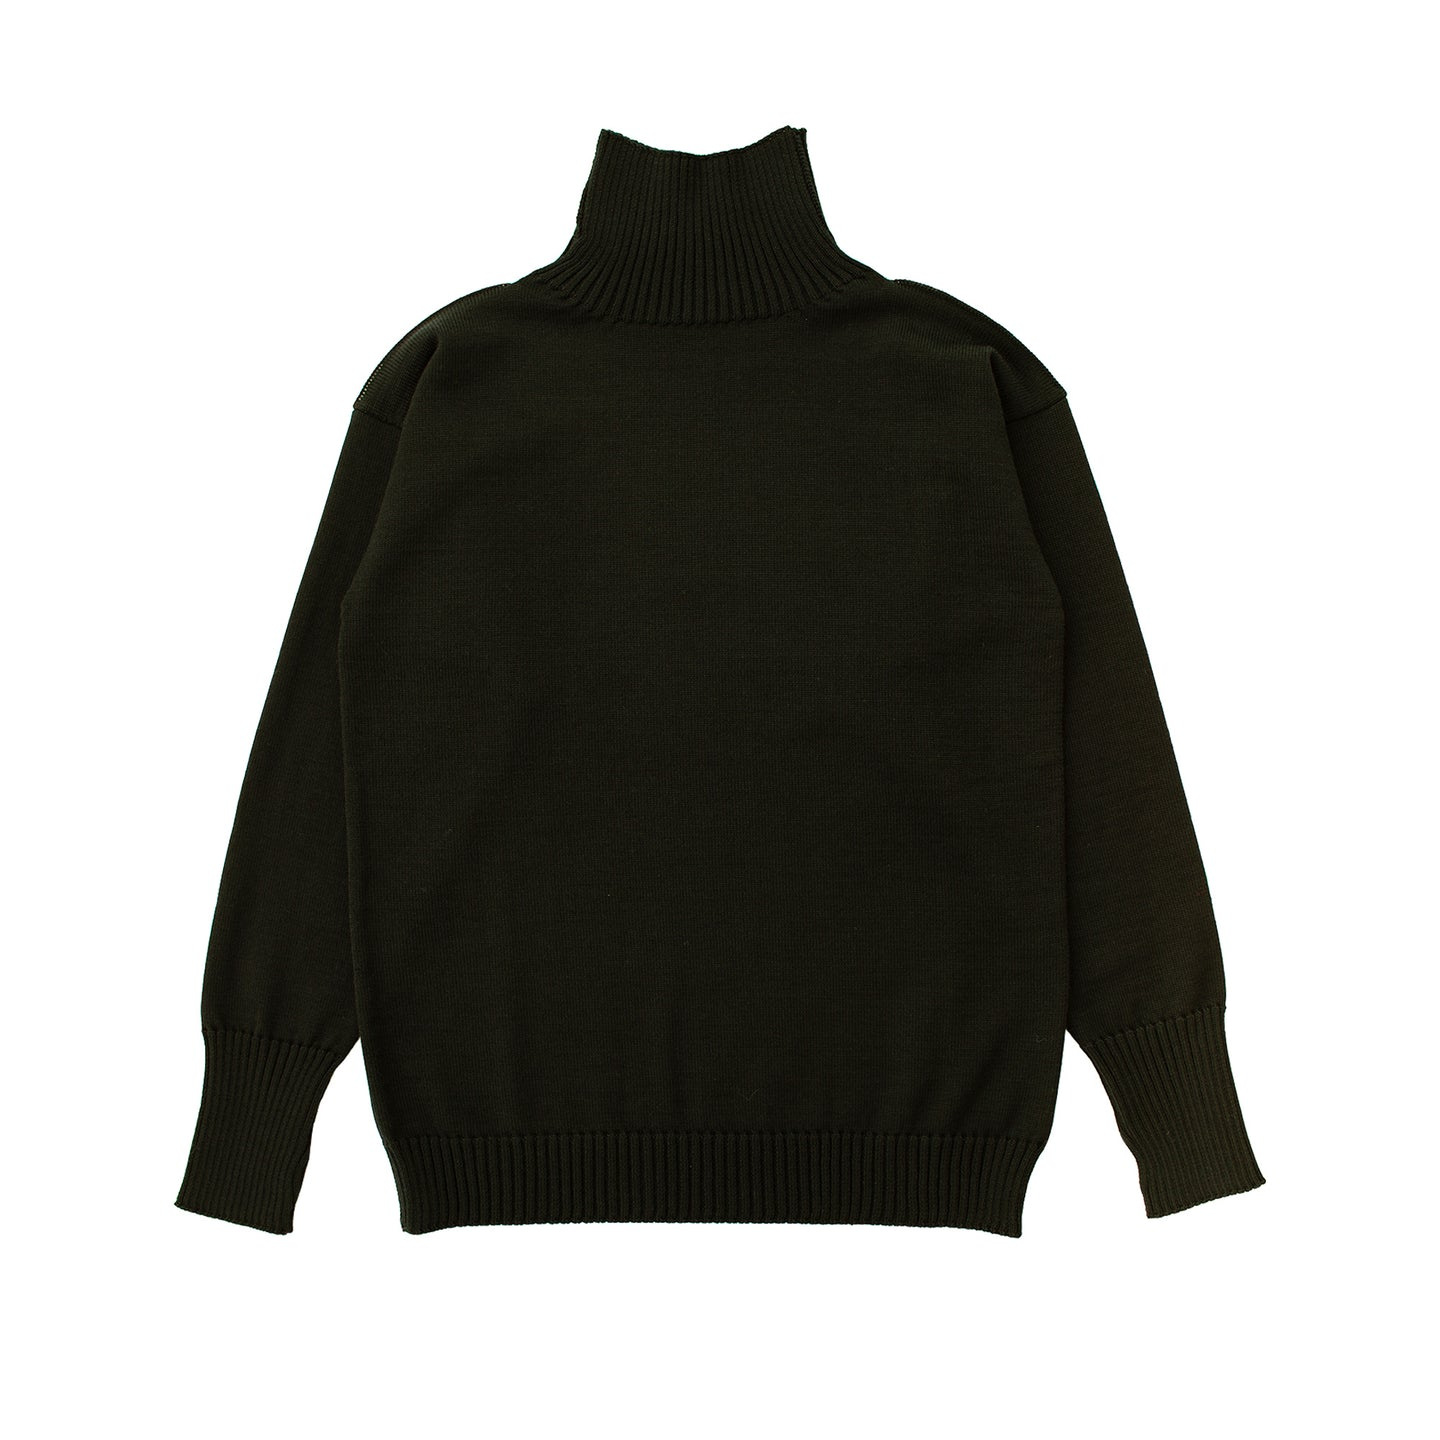 Seaman Turtleneck - Hunting Green